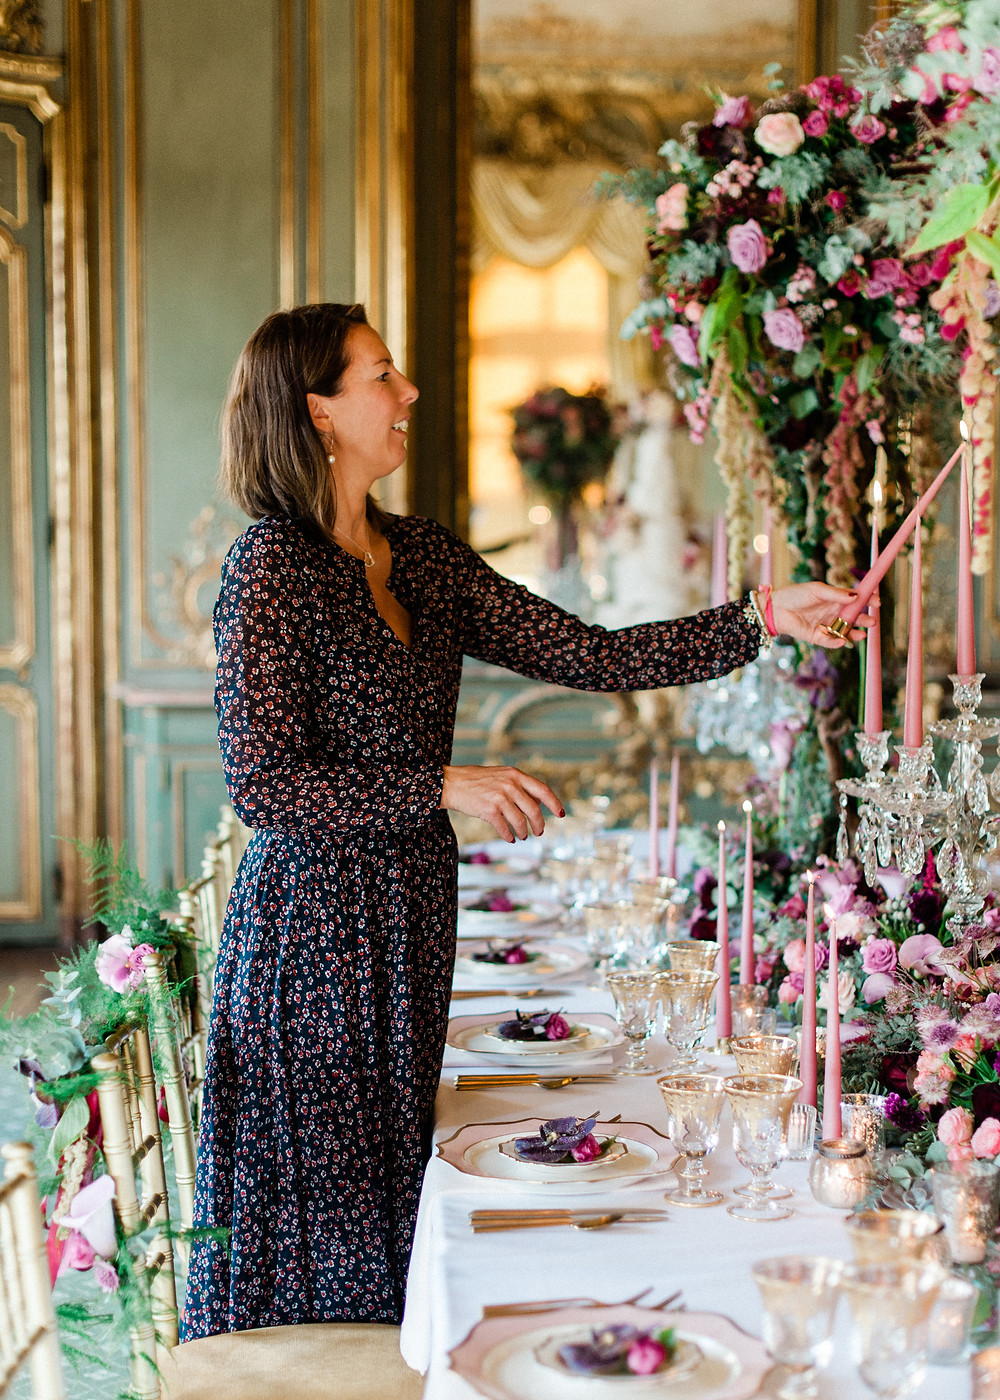 Cliveden House wedding, country house wedding, stately home wedding